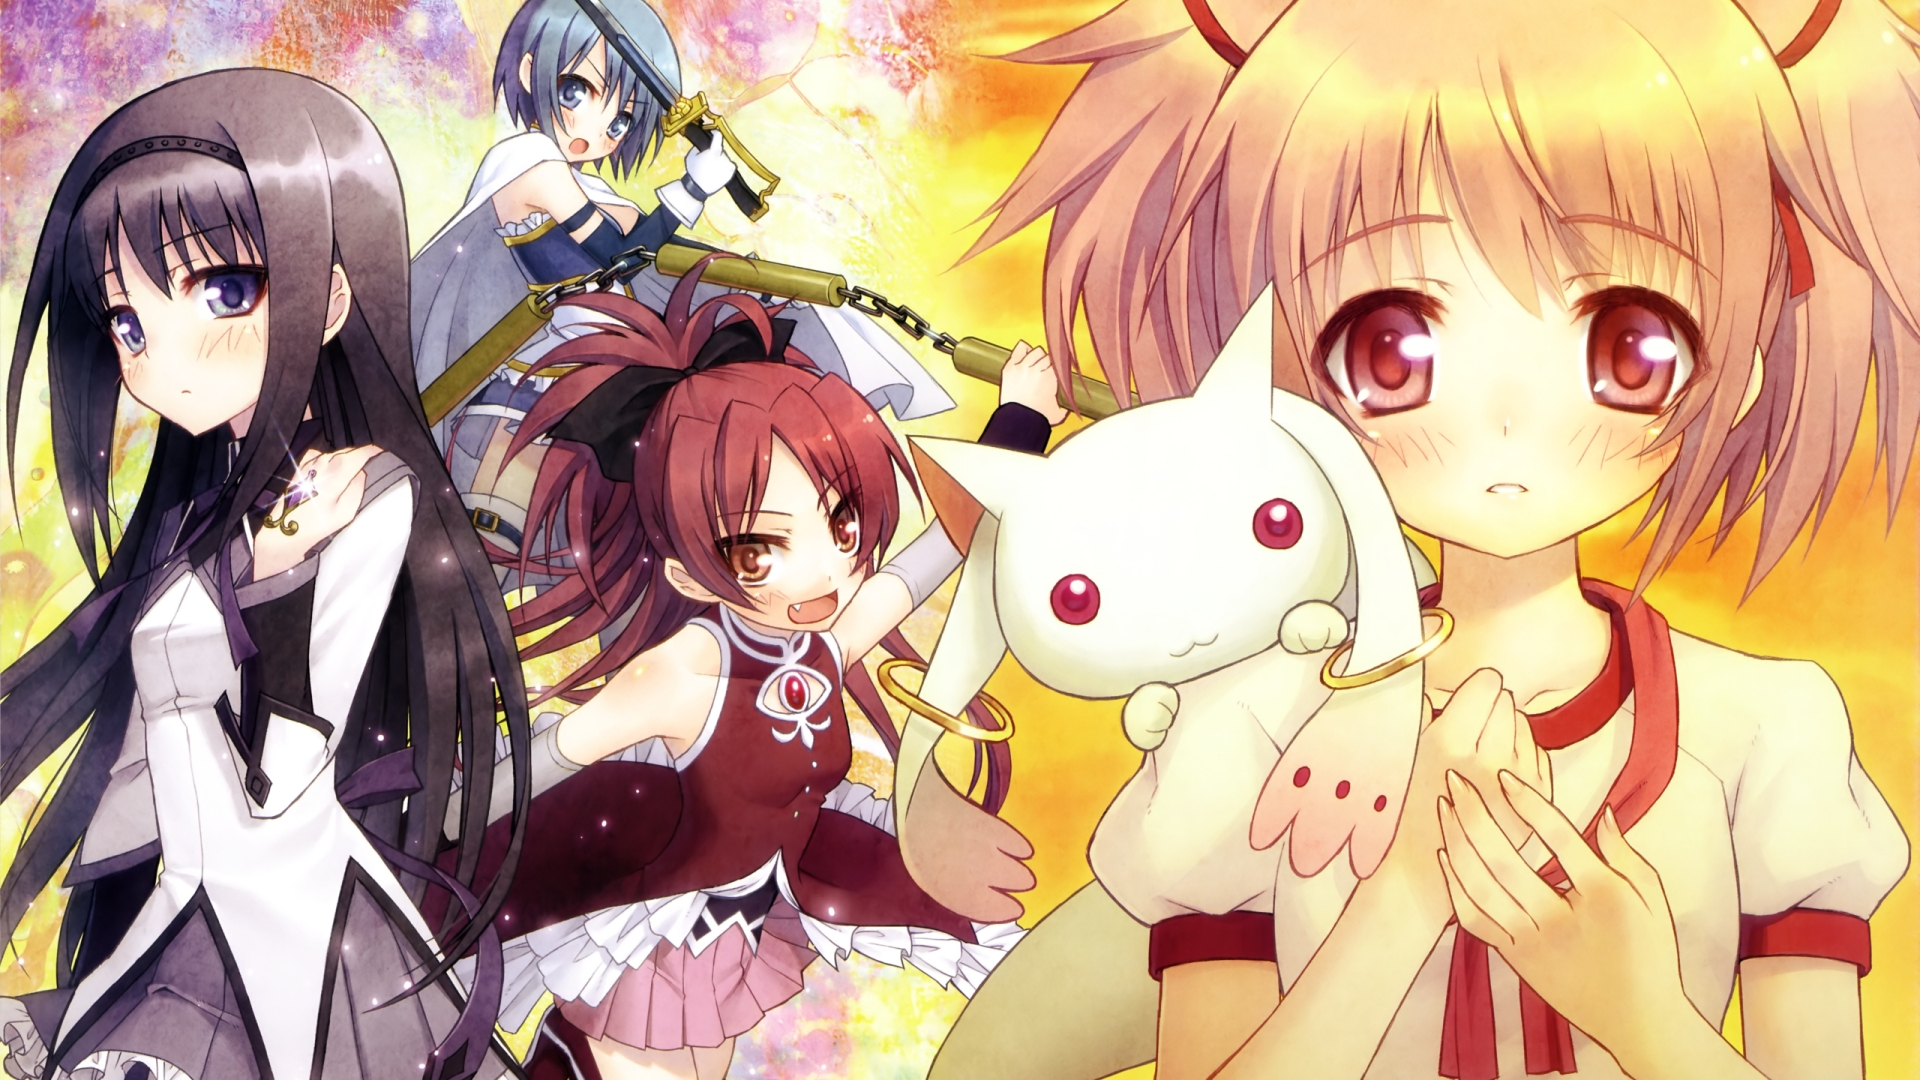 How sad was Madoka Magica (from 1 to 10)? Poll Results